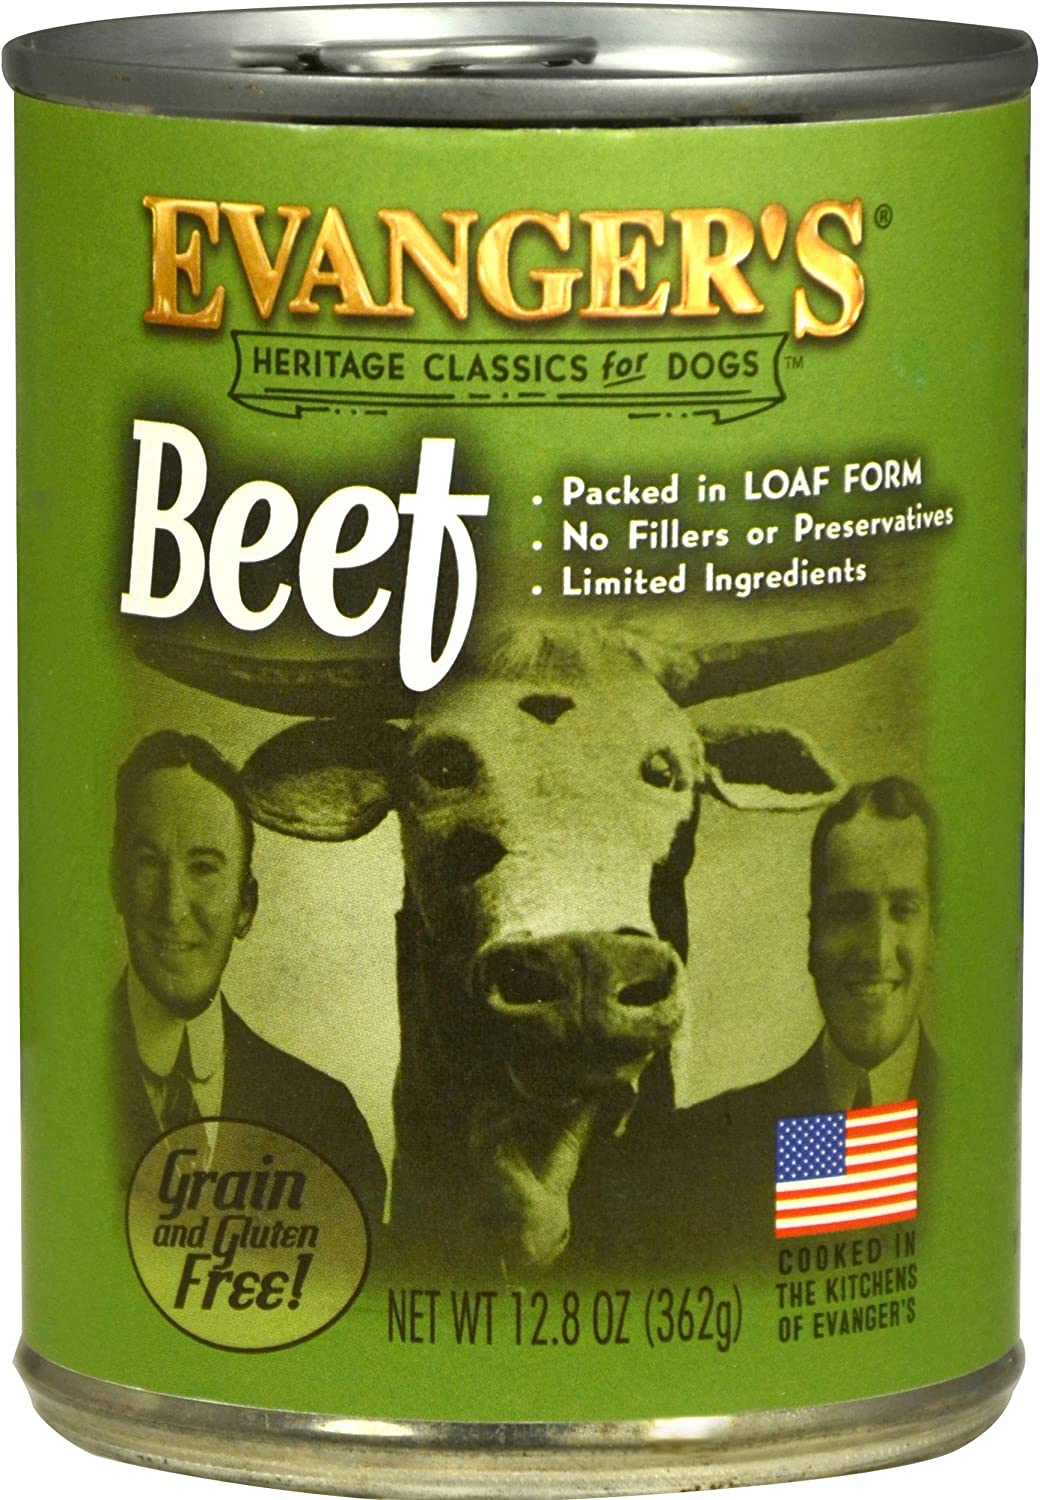 Evanger's Heritage Classics Beef for Dogs - 12, 12.5 oz cans